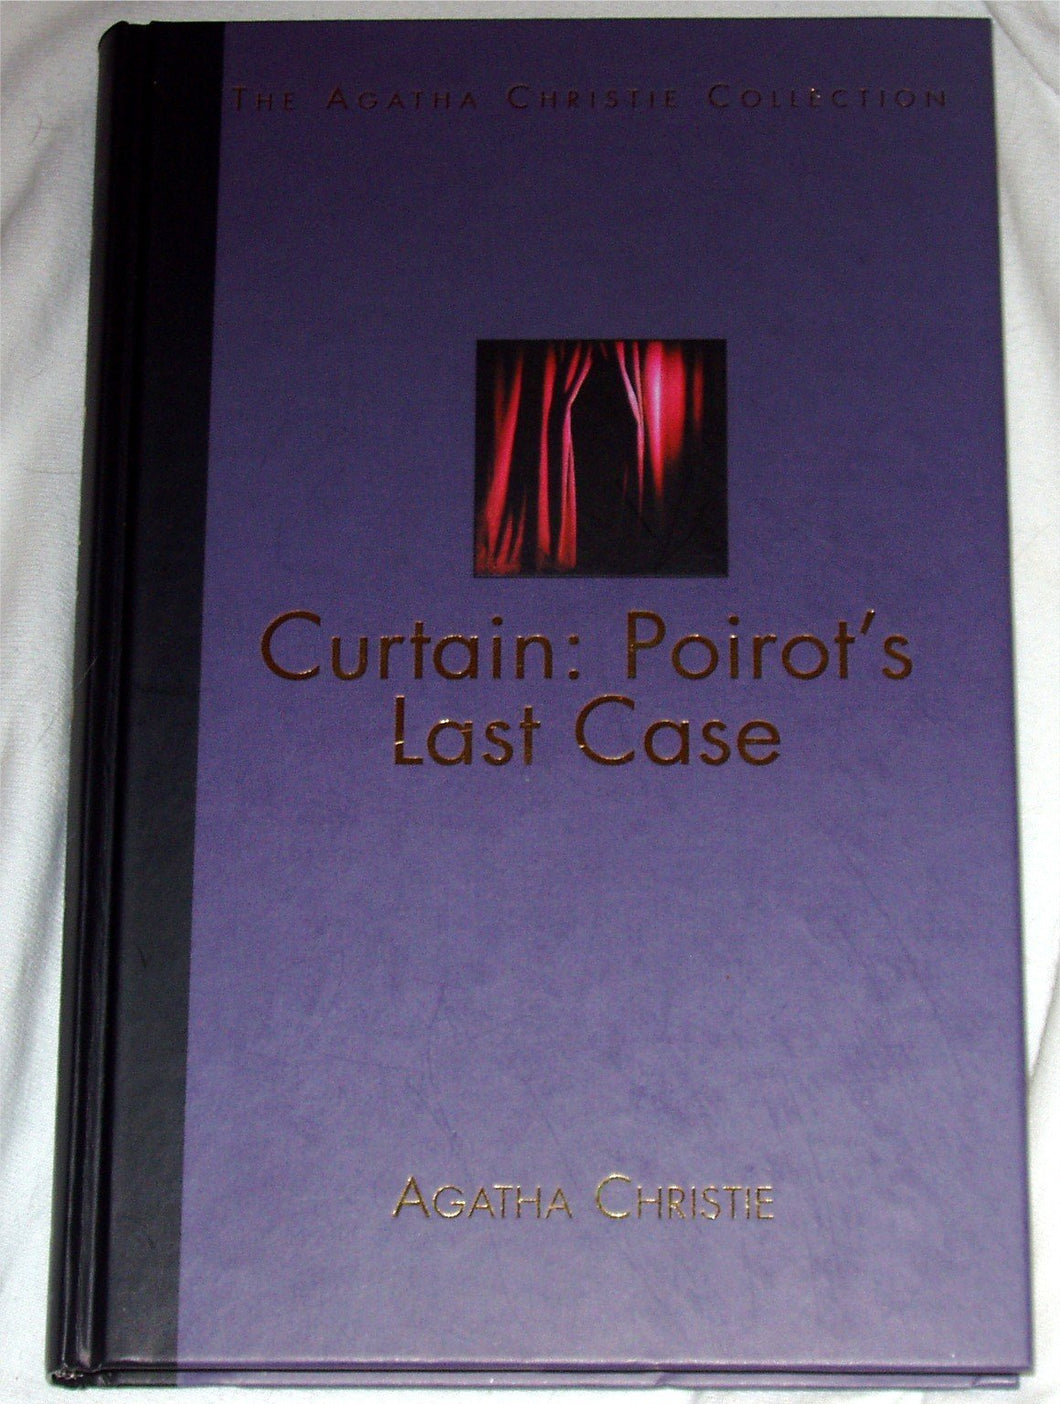 Curtain: Poirot's Last Case (The Agatha Christie Collection)